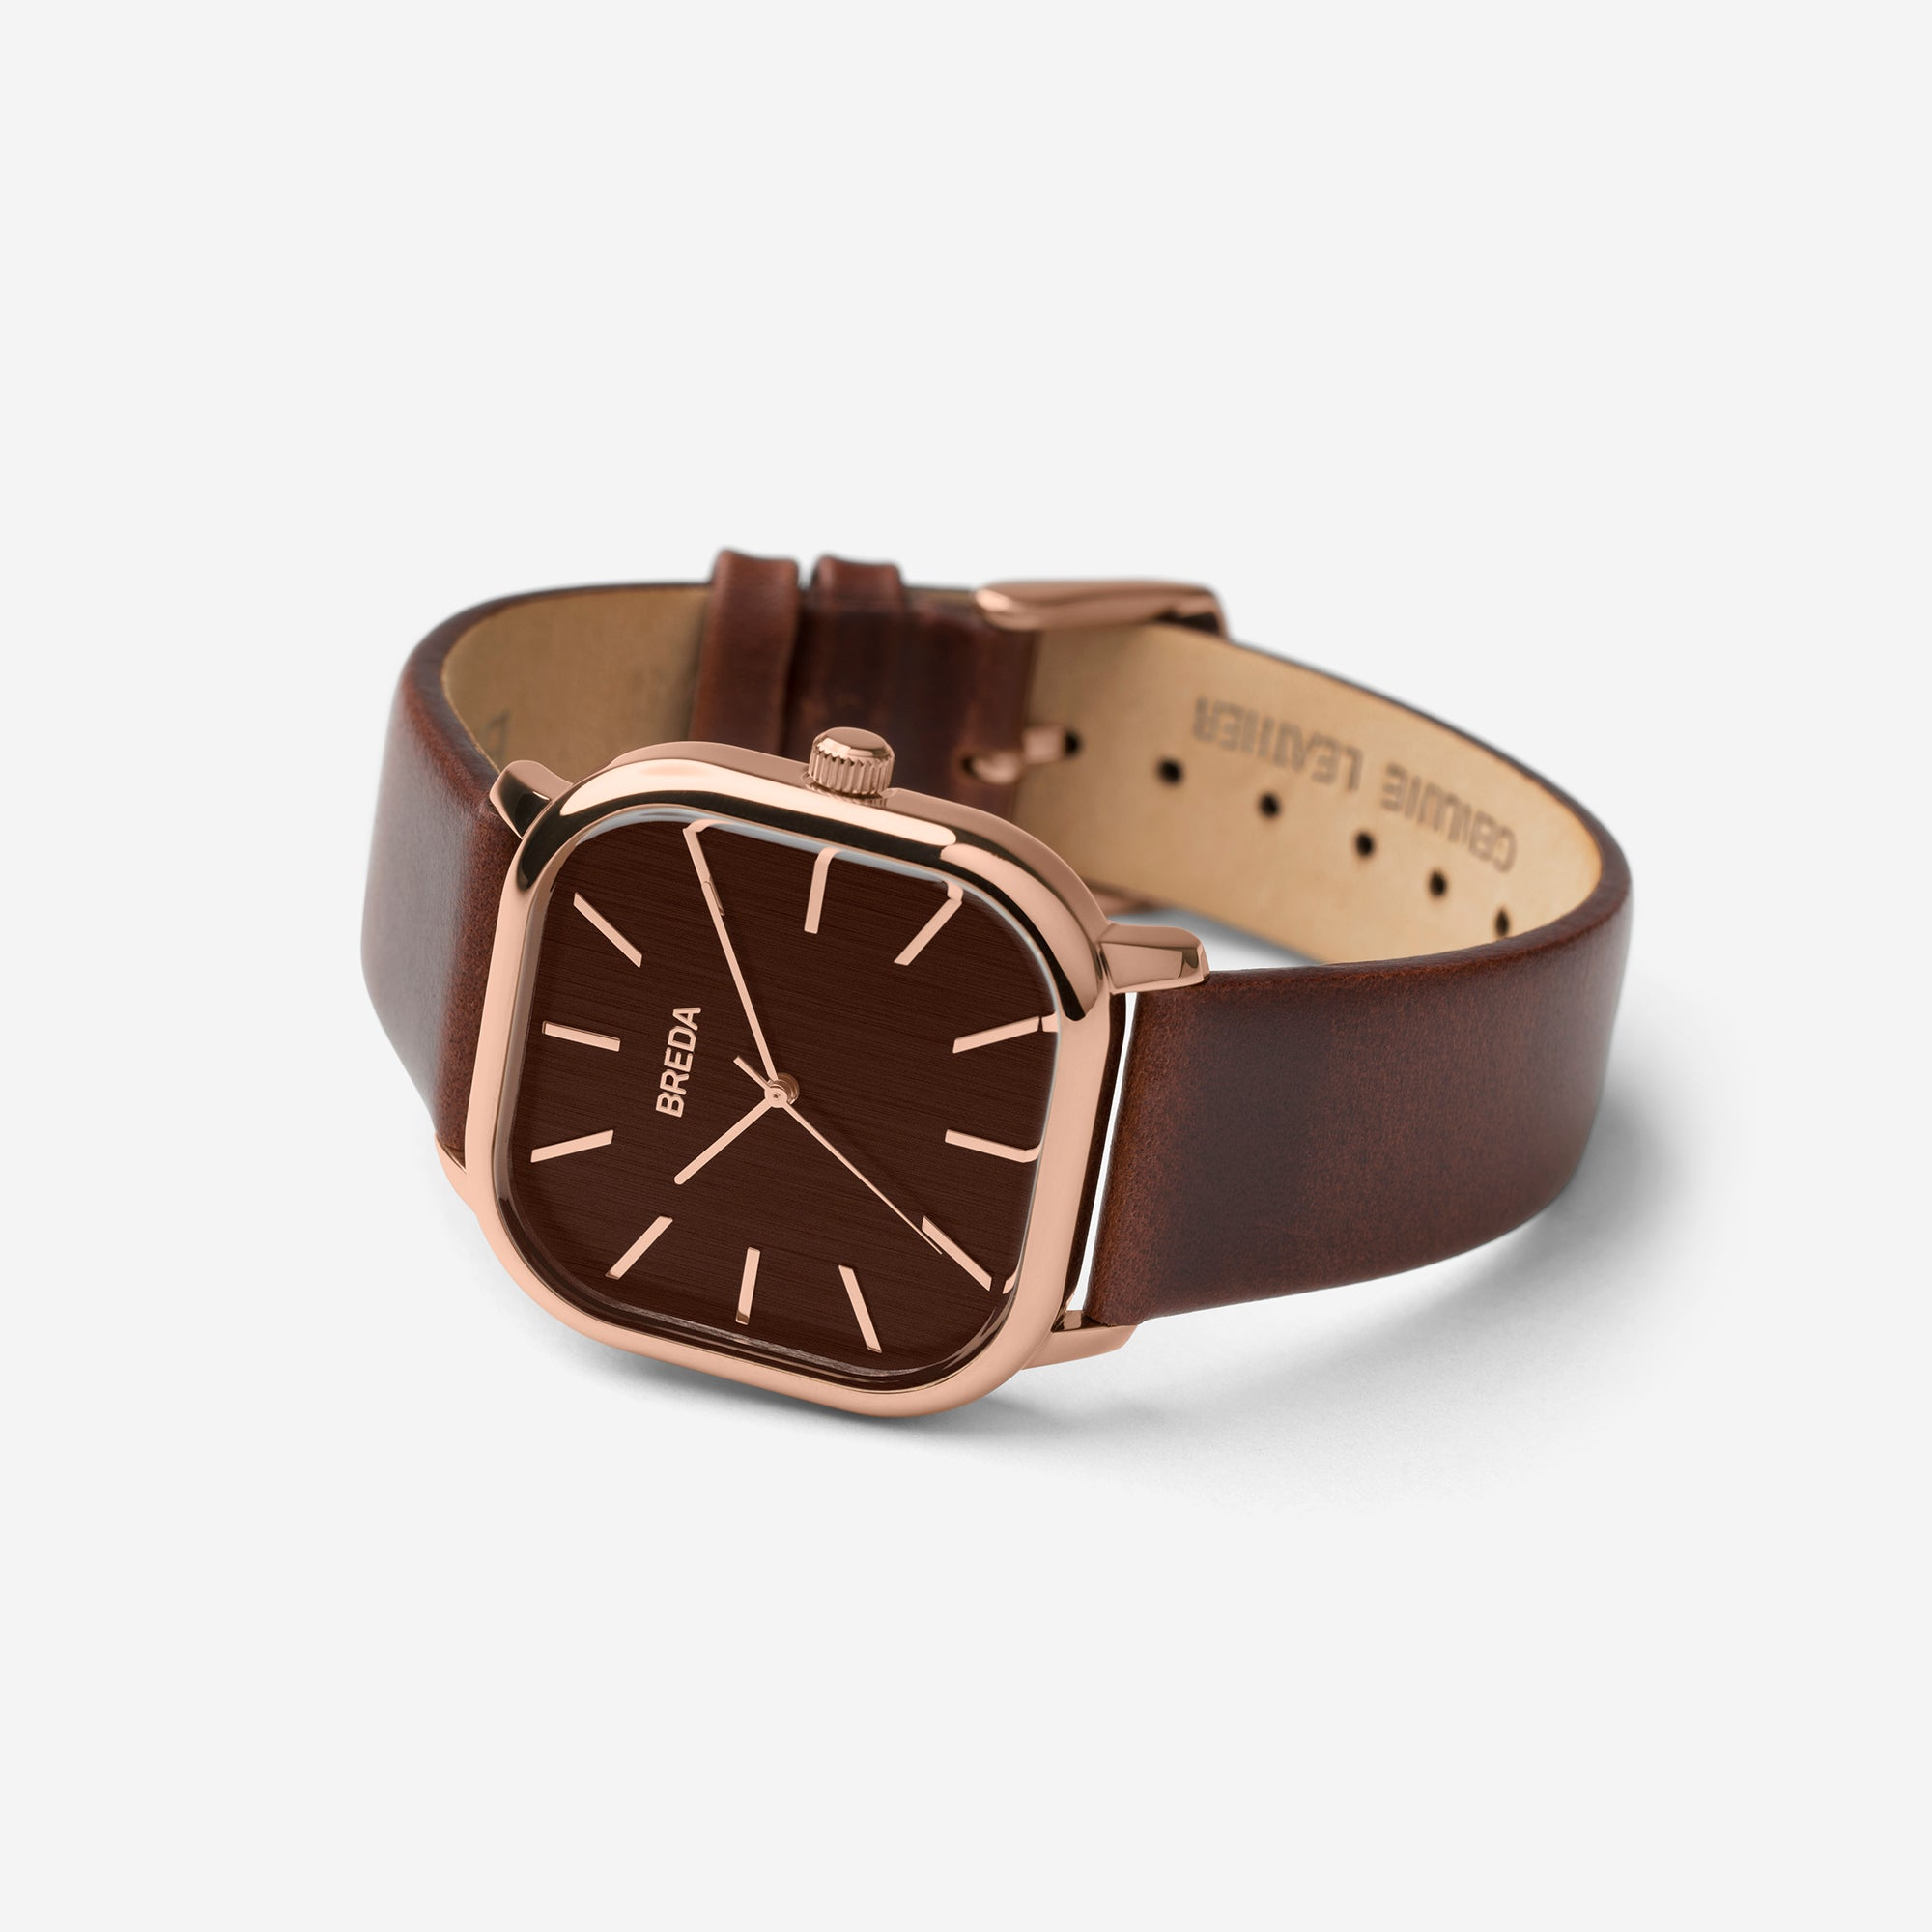 //cdn.shopify.com/s/files/1/0879/6650/products/breda-visser-1728f-rose-gold-brown-leather-watch-angle_89bcdf9f-caba-4107-98e5-a96ecb003eed_1024x1024.jpg?v=1543254799